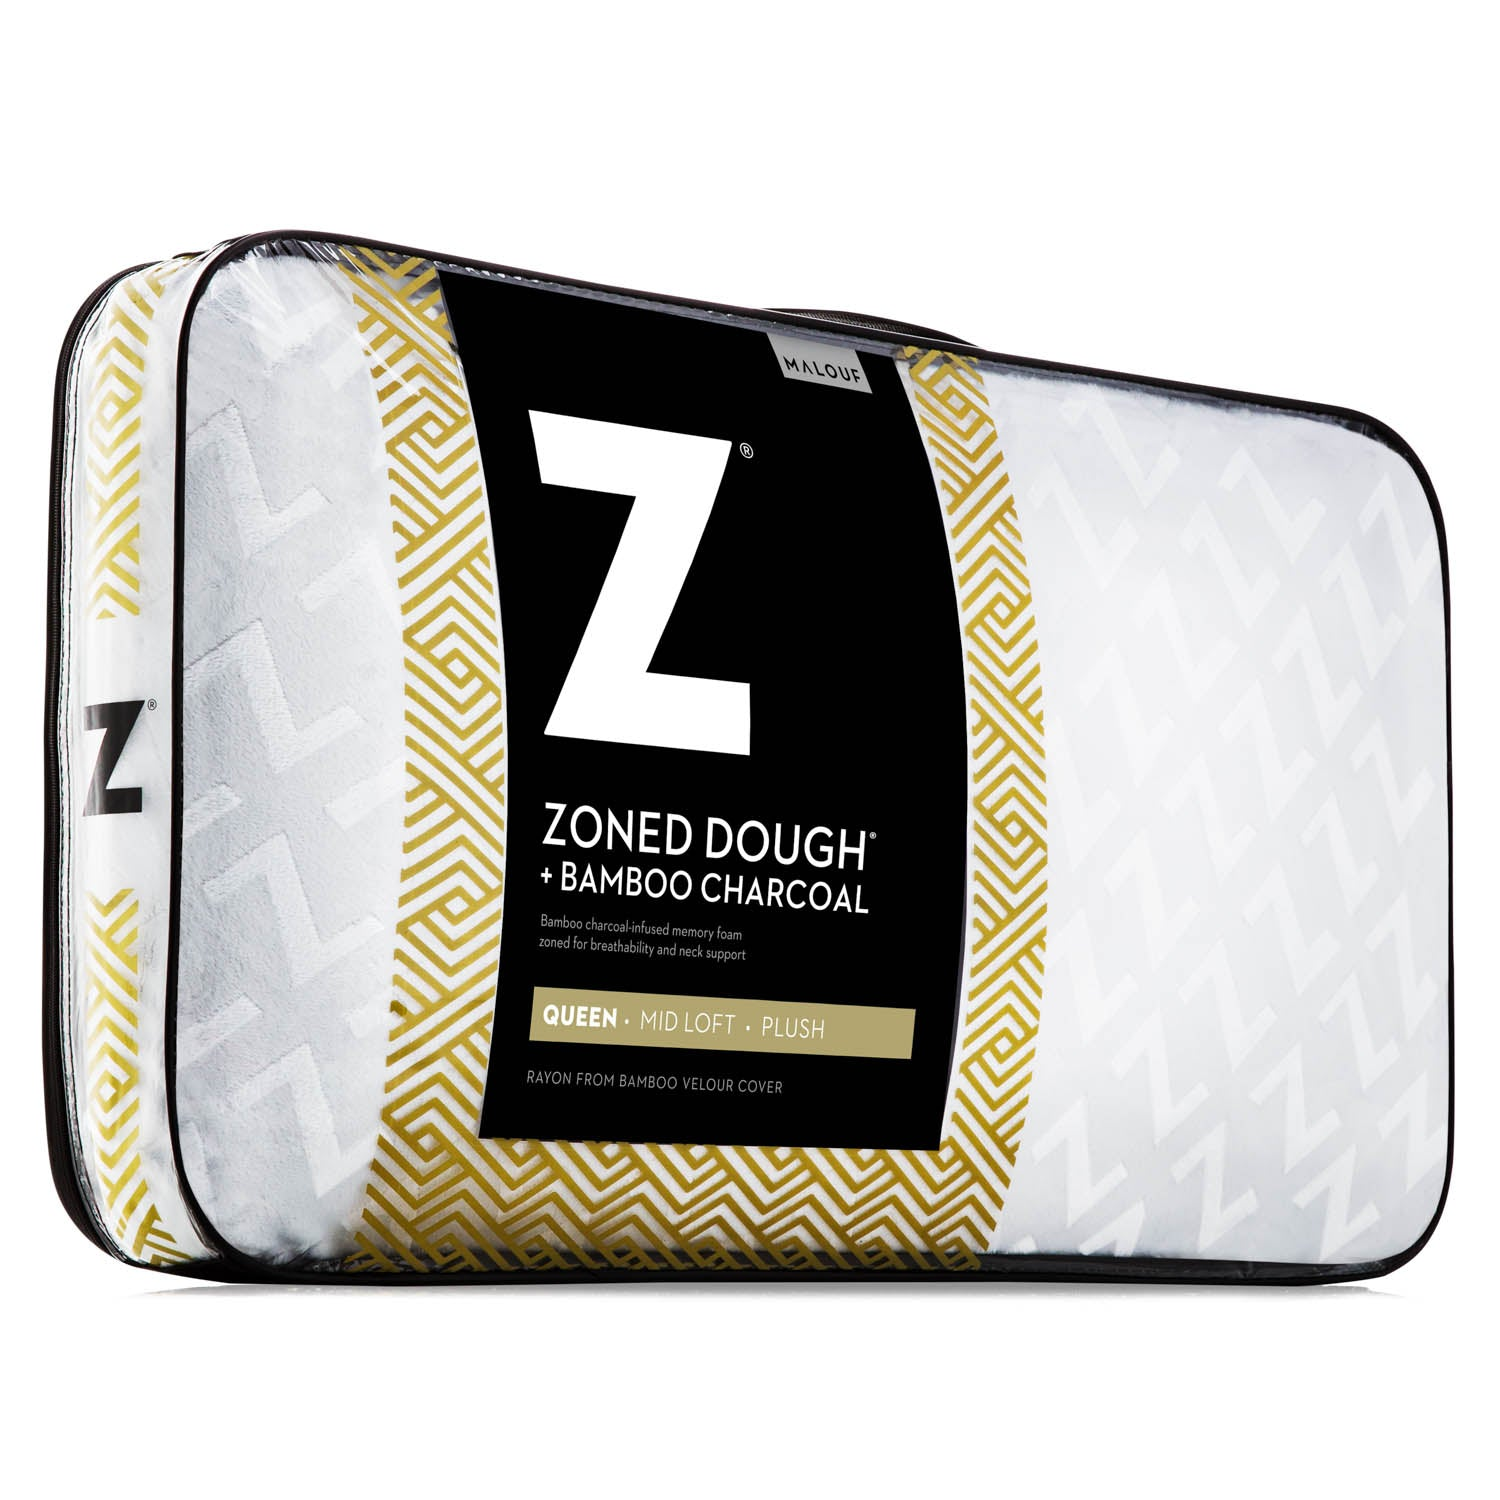 Zoned Dough + Bamboo Charcoal Pillow - Ultimate Comfort Sleep